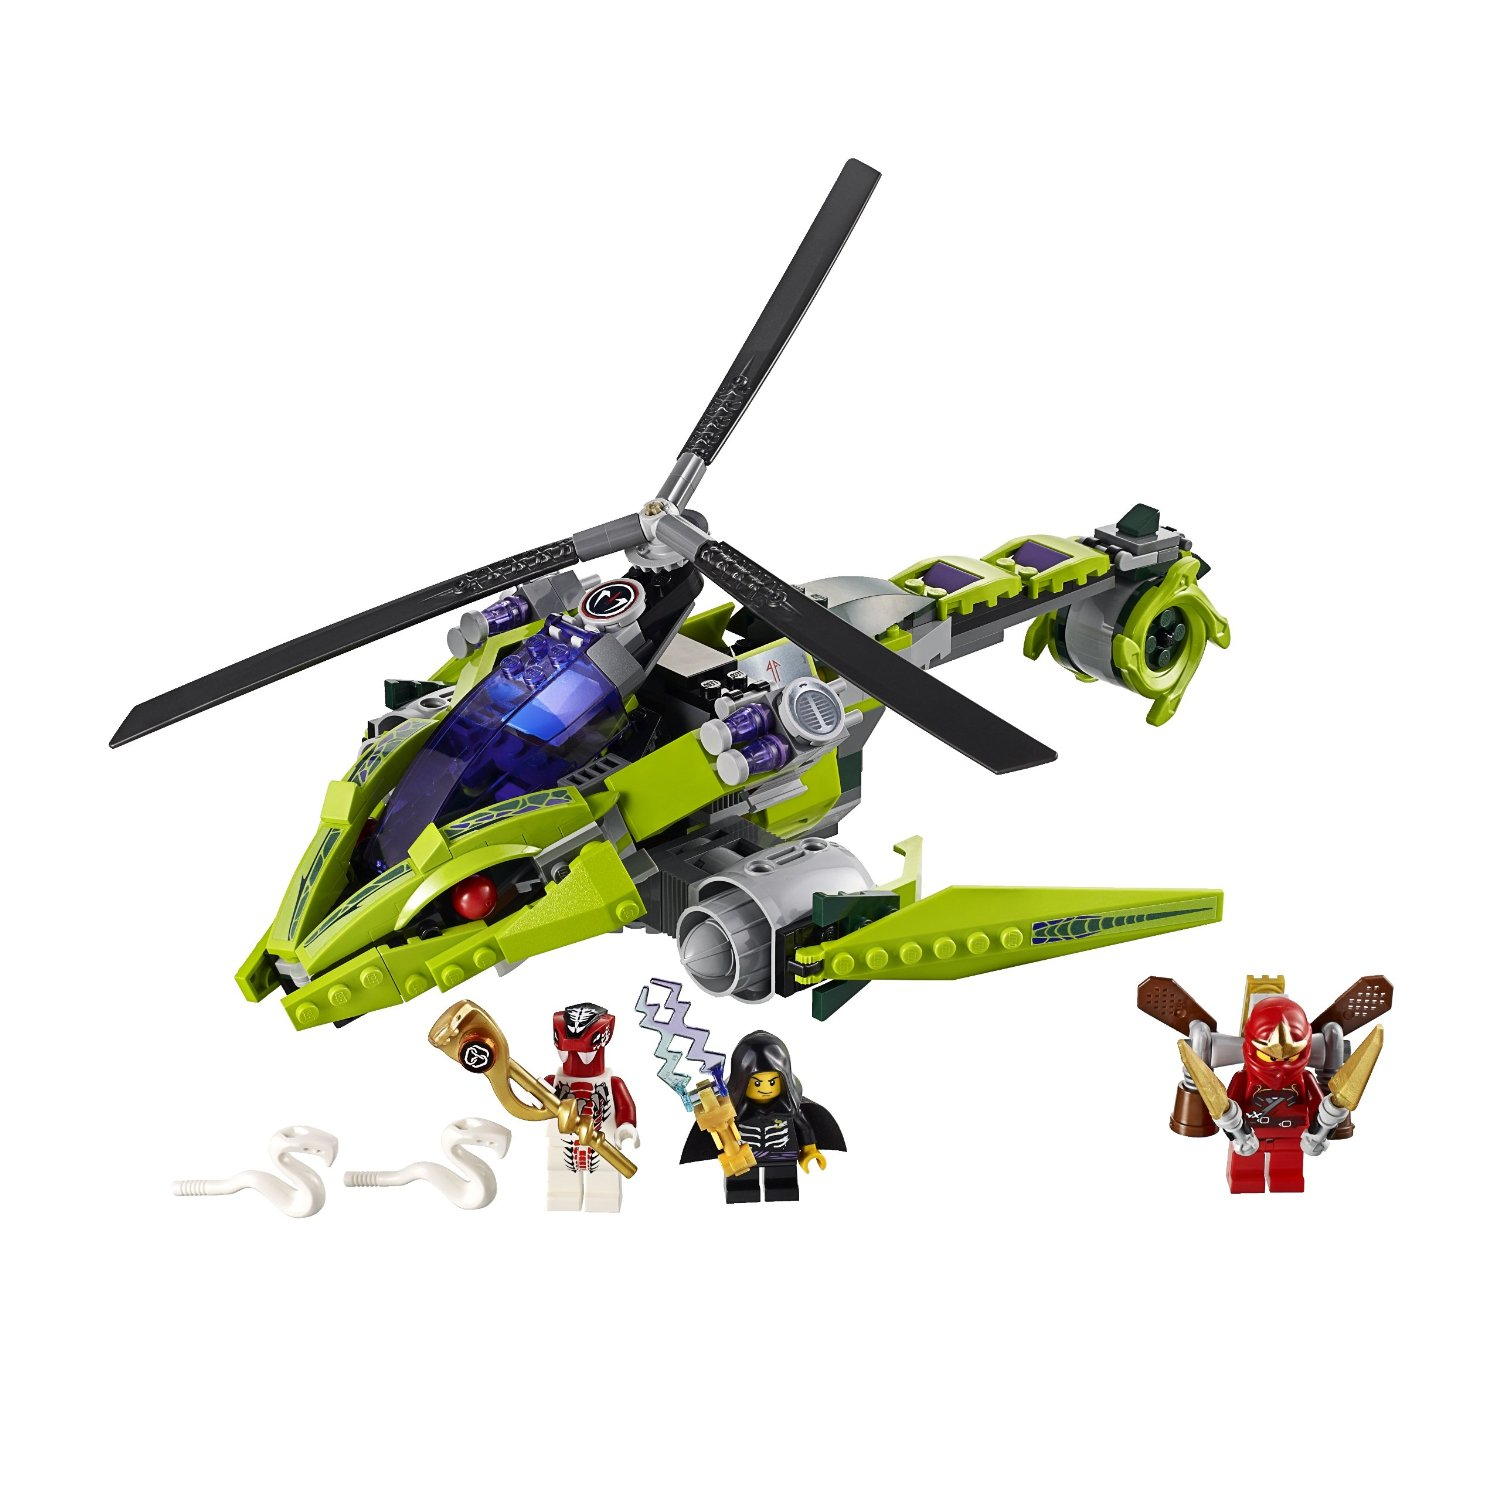 mini helicopter toy with Lego Ninjago Rattlecopter Great Gift For Your Lego Lover on Bruder Man Crane Truck Construction Toy moreover Subtheme Police further Remote Control Toy Drones For Kids moreover 32801474227 as well Marvins Magic Wizard Glow In The Dark Wand.